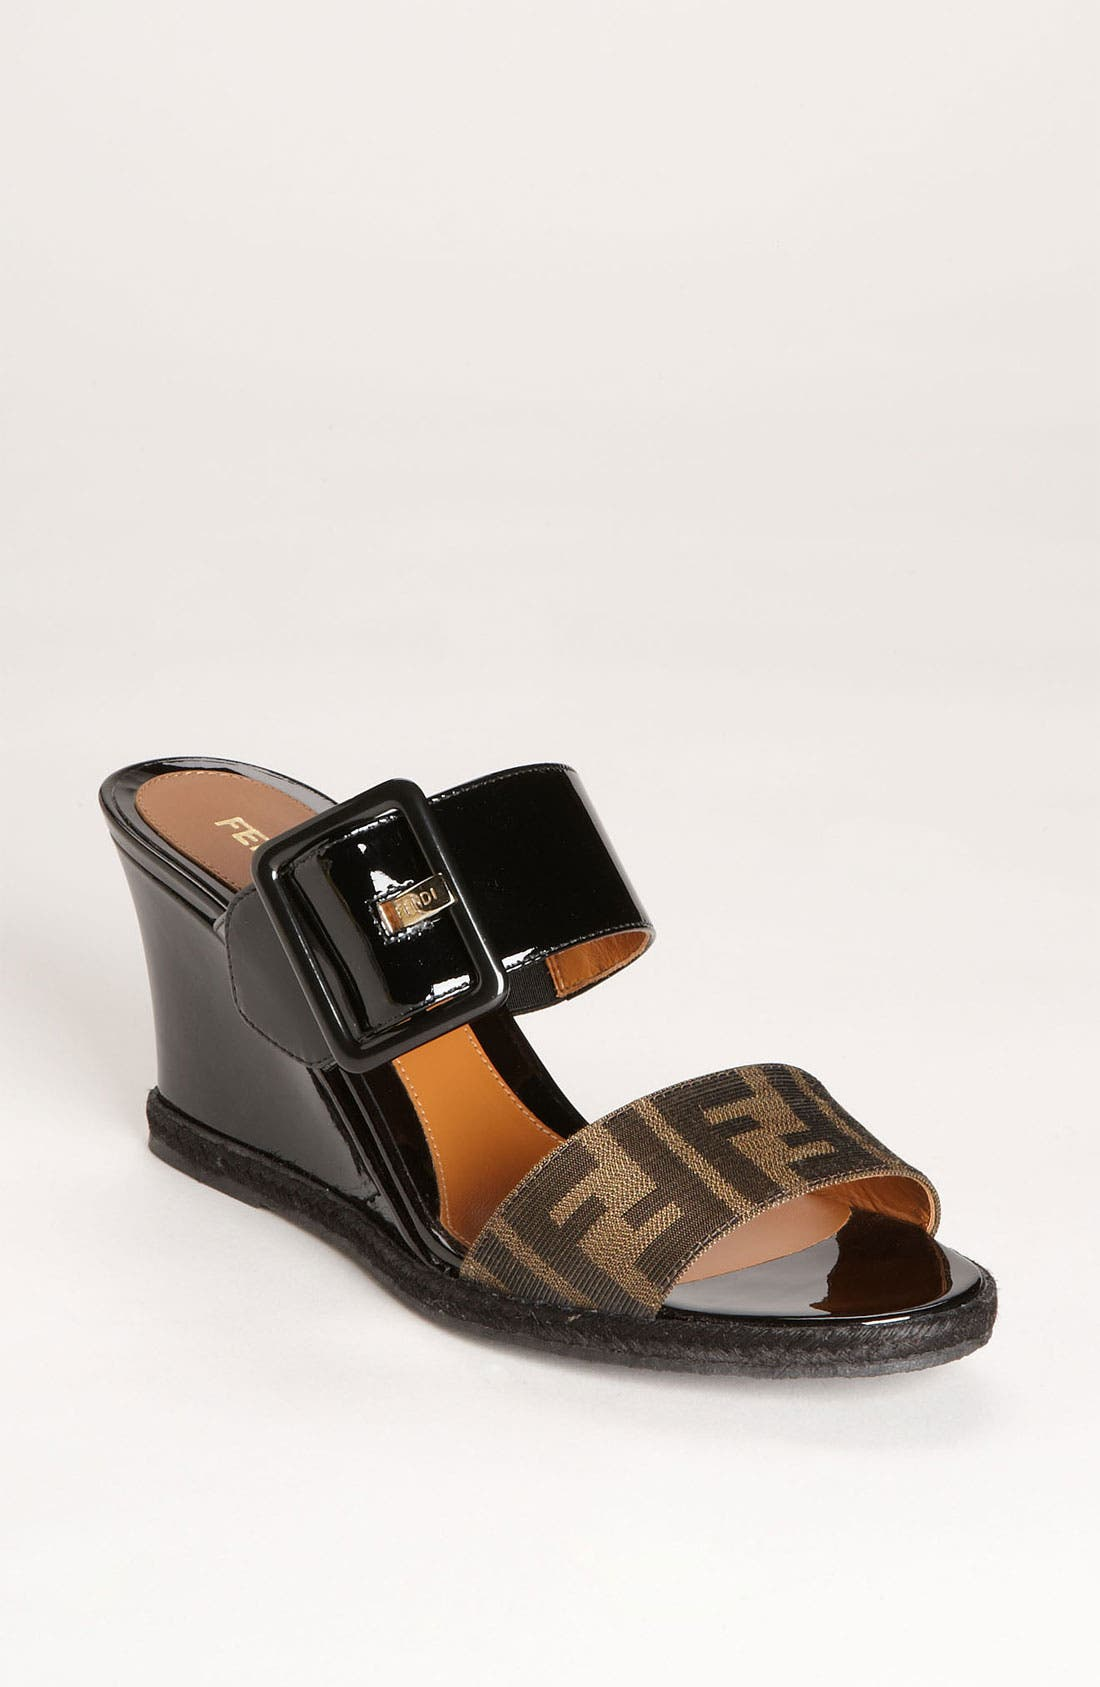 Main Image - Fendi 'Vernis' Wedge Sandal (Women)